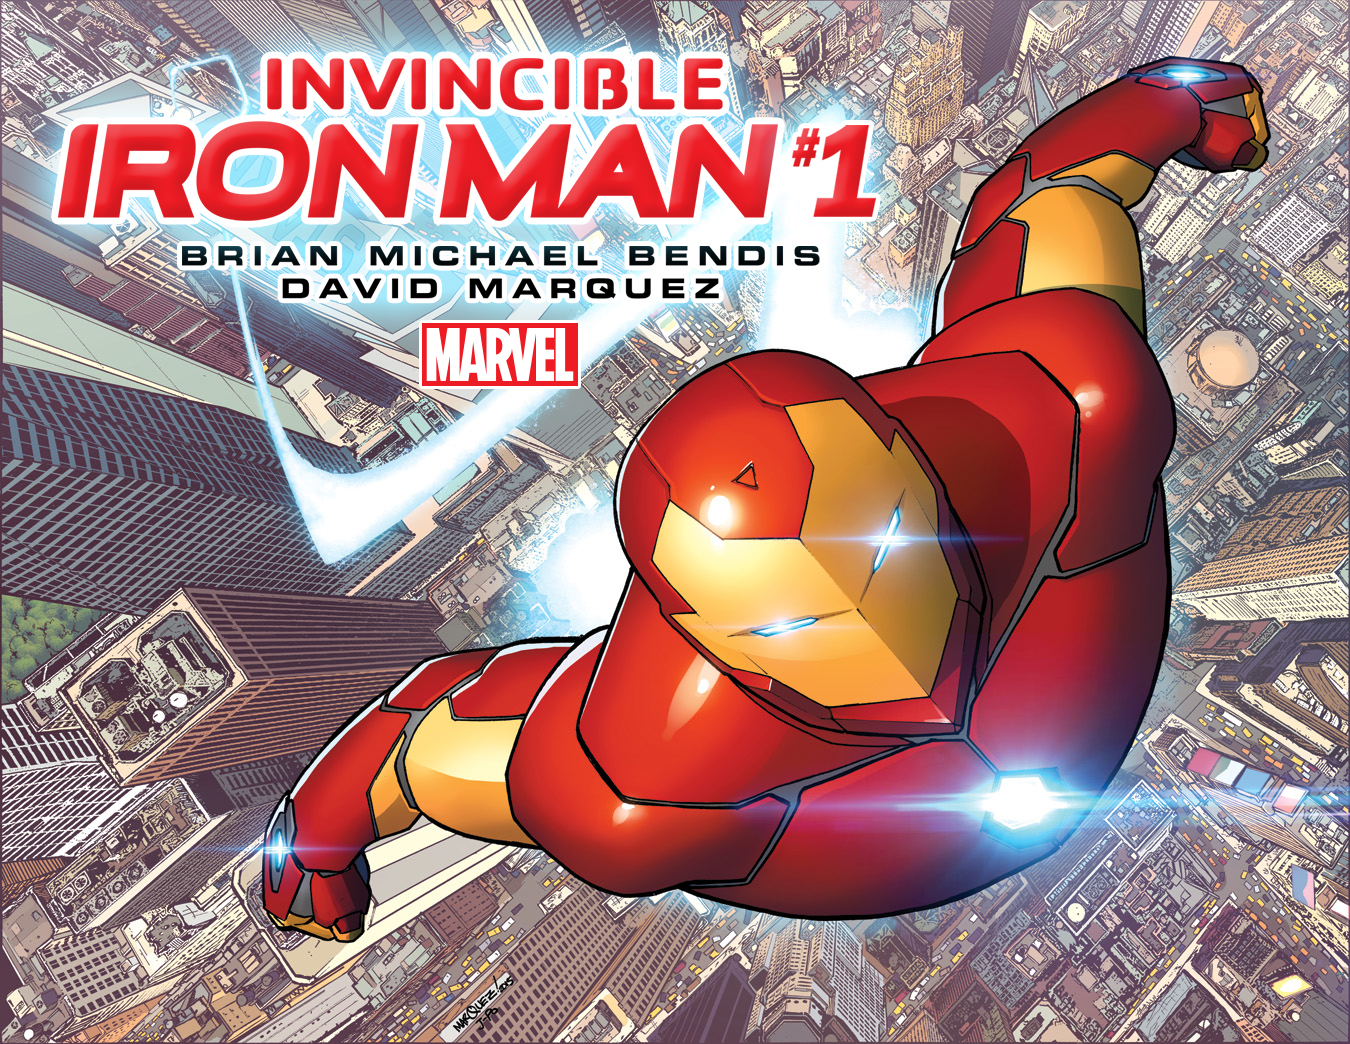 Suit Up With Your New Look at INVINCIBLE IRON MAN #1!